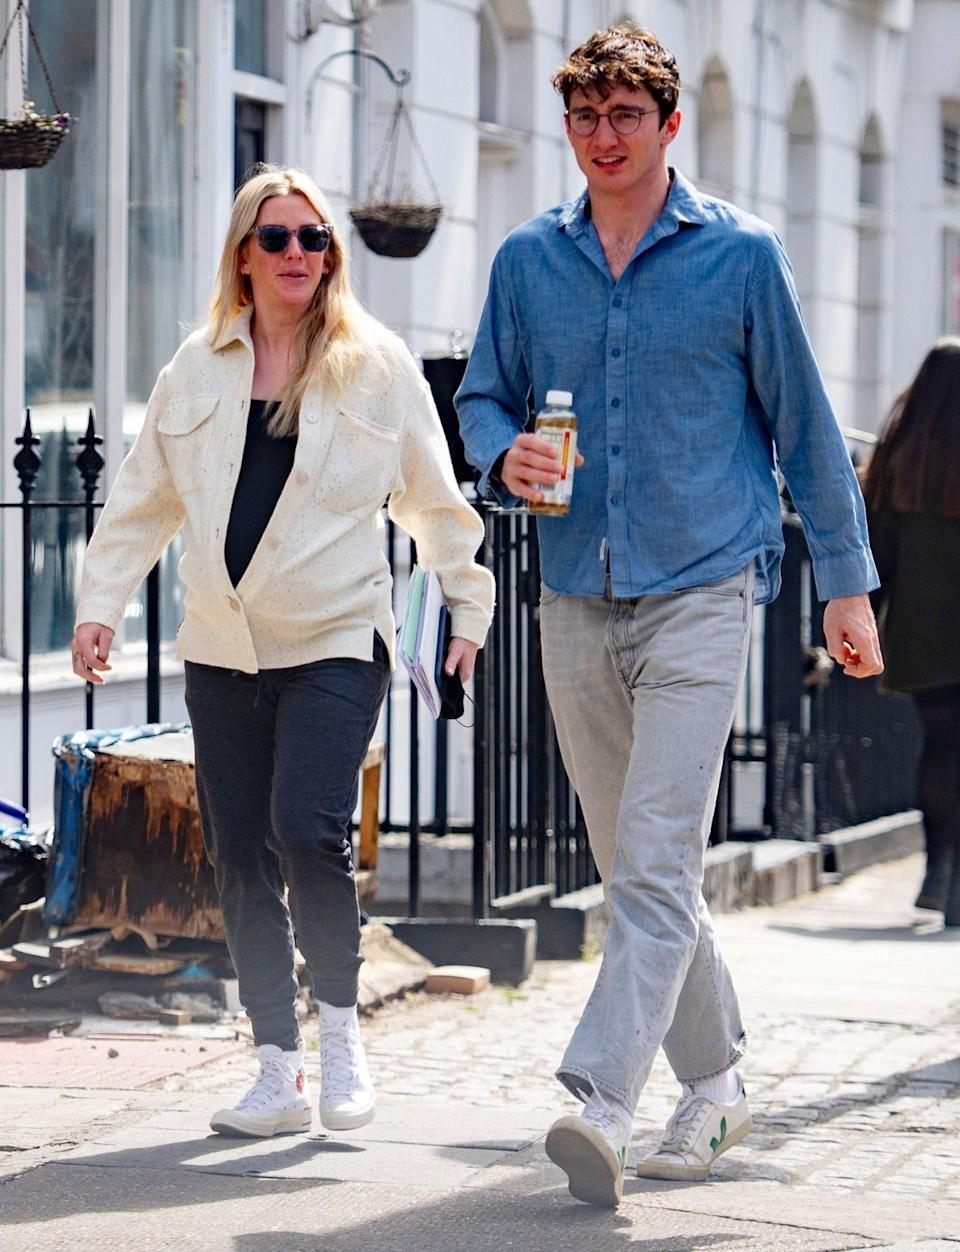 <p>Ellie Goulding, who announced her pregnancy in February, steps out with her husband Caspar Jopling in London on Wednesday. </p>